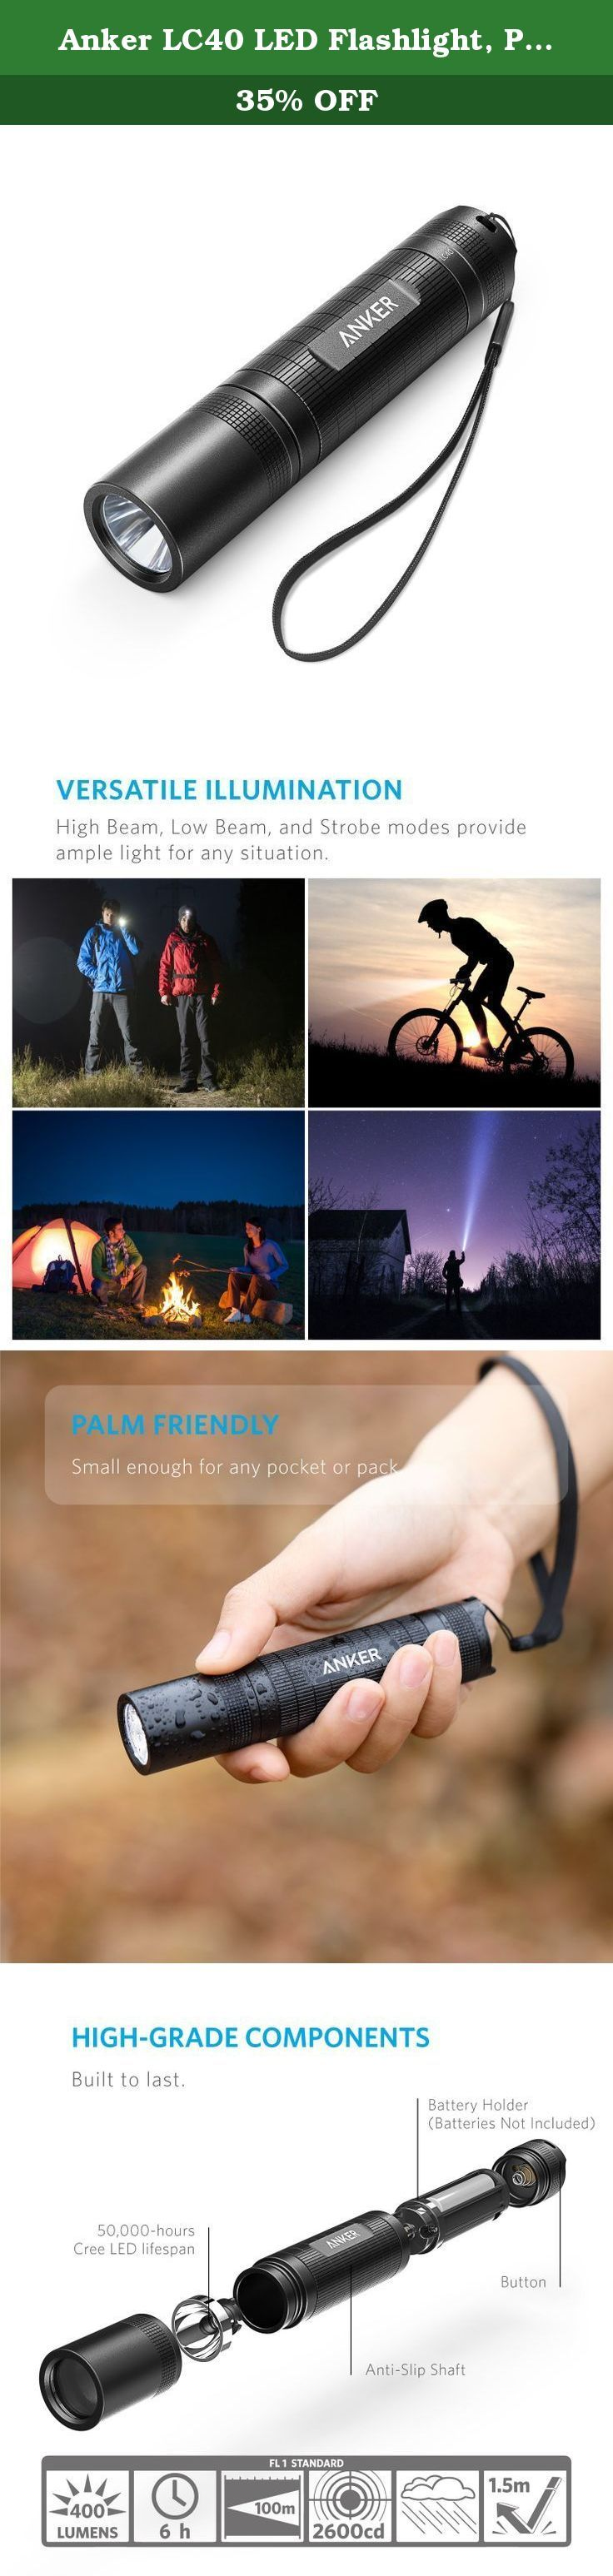 Anker LC40 LED Flashlight, Pocket-Sized LED Torch, Super Bright 400 Lumens CREE LED, IP65 Water Resistant, 3 Modes High/Low/Strobe for Indoors and Outdoors (Camping, Hiking, Cycling and Emergency Use). Anker LC40 Flashlight The Bright and Compact Flashlight From ANKER, the Choice of 20 Million+ Happy Users • Industry-Leading Technology • Worry-Free Warranty • 99% Positive Feedback Convenient Size and Comfortable Use Compact but also comfortable to hold, with a straight, anti-slip design…